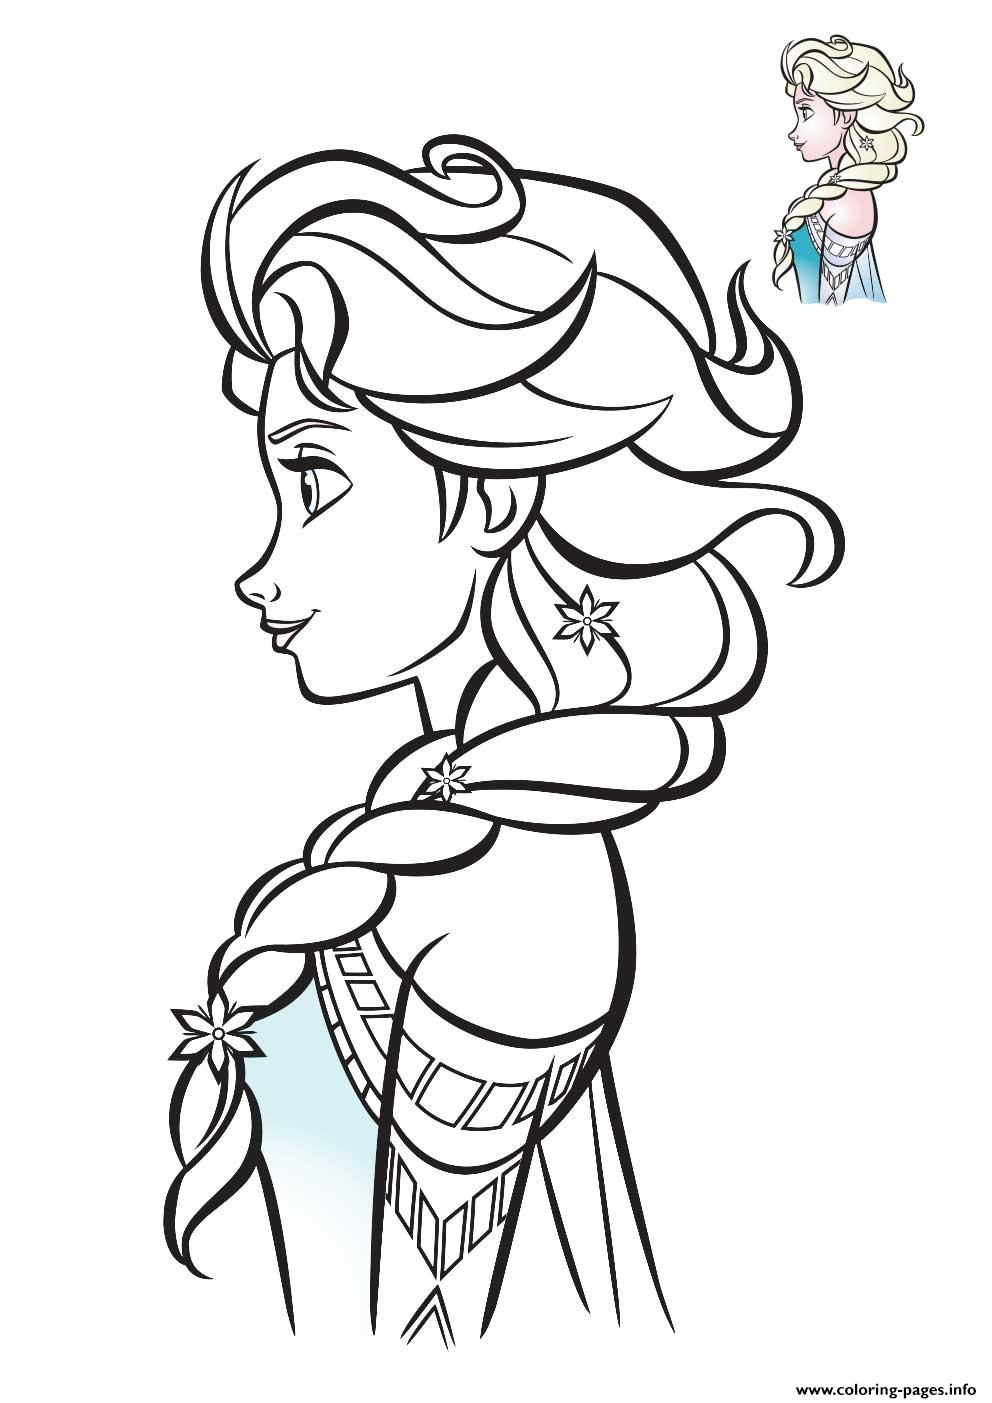 Elsa Frozen Profil 2018 Coloring Pages Printable